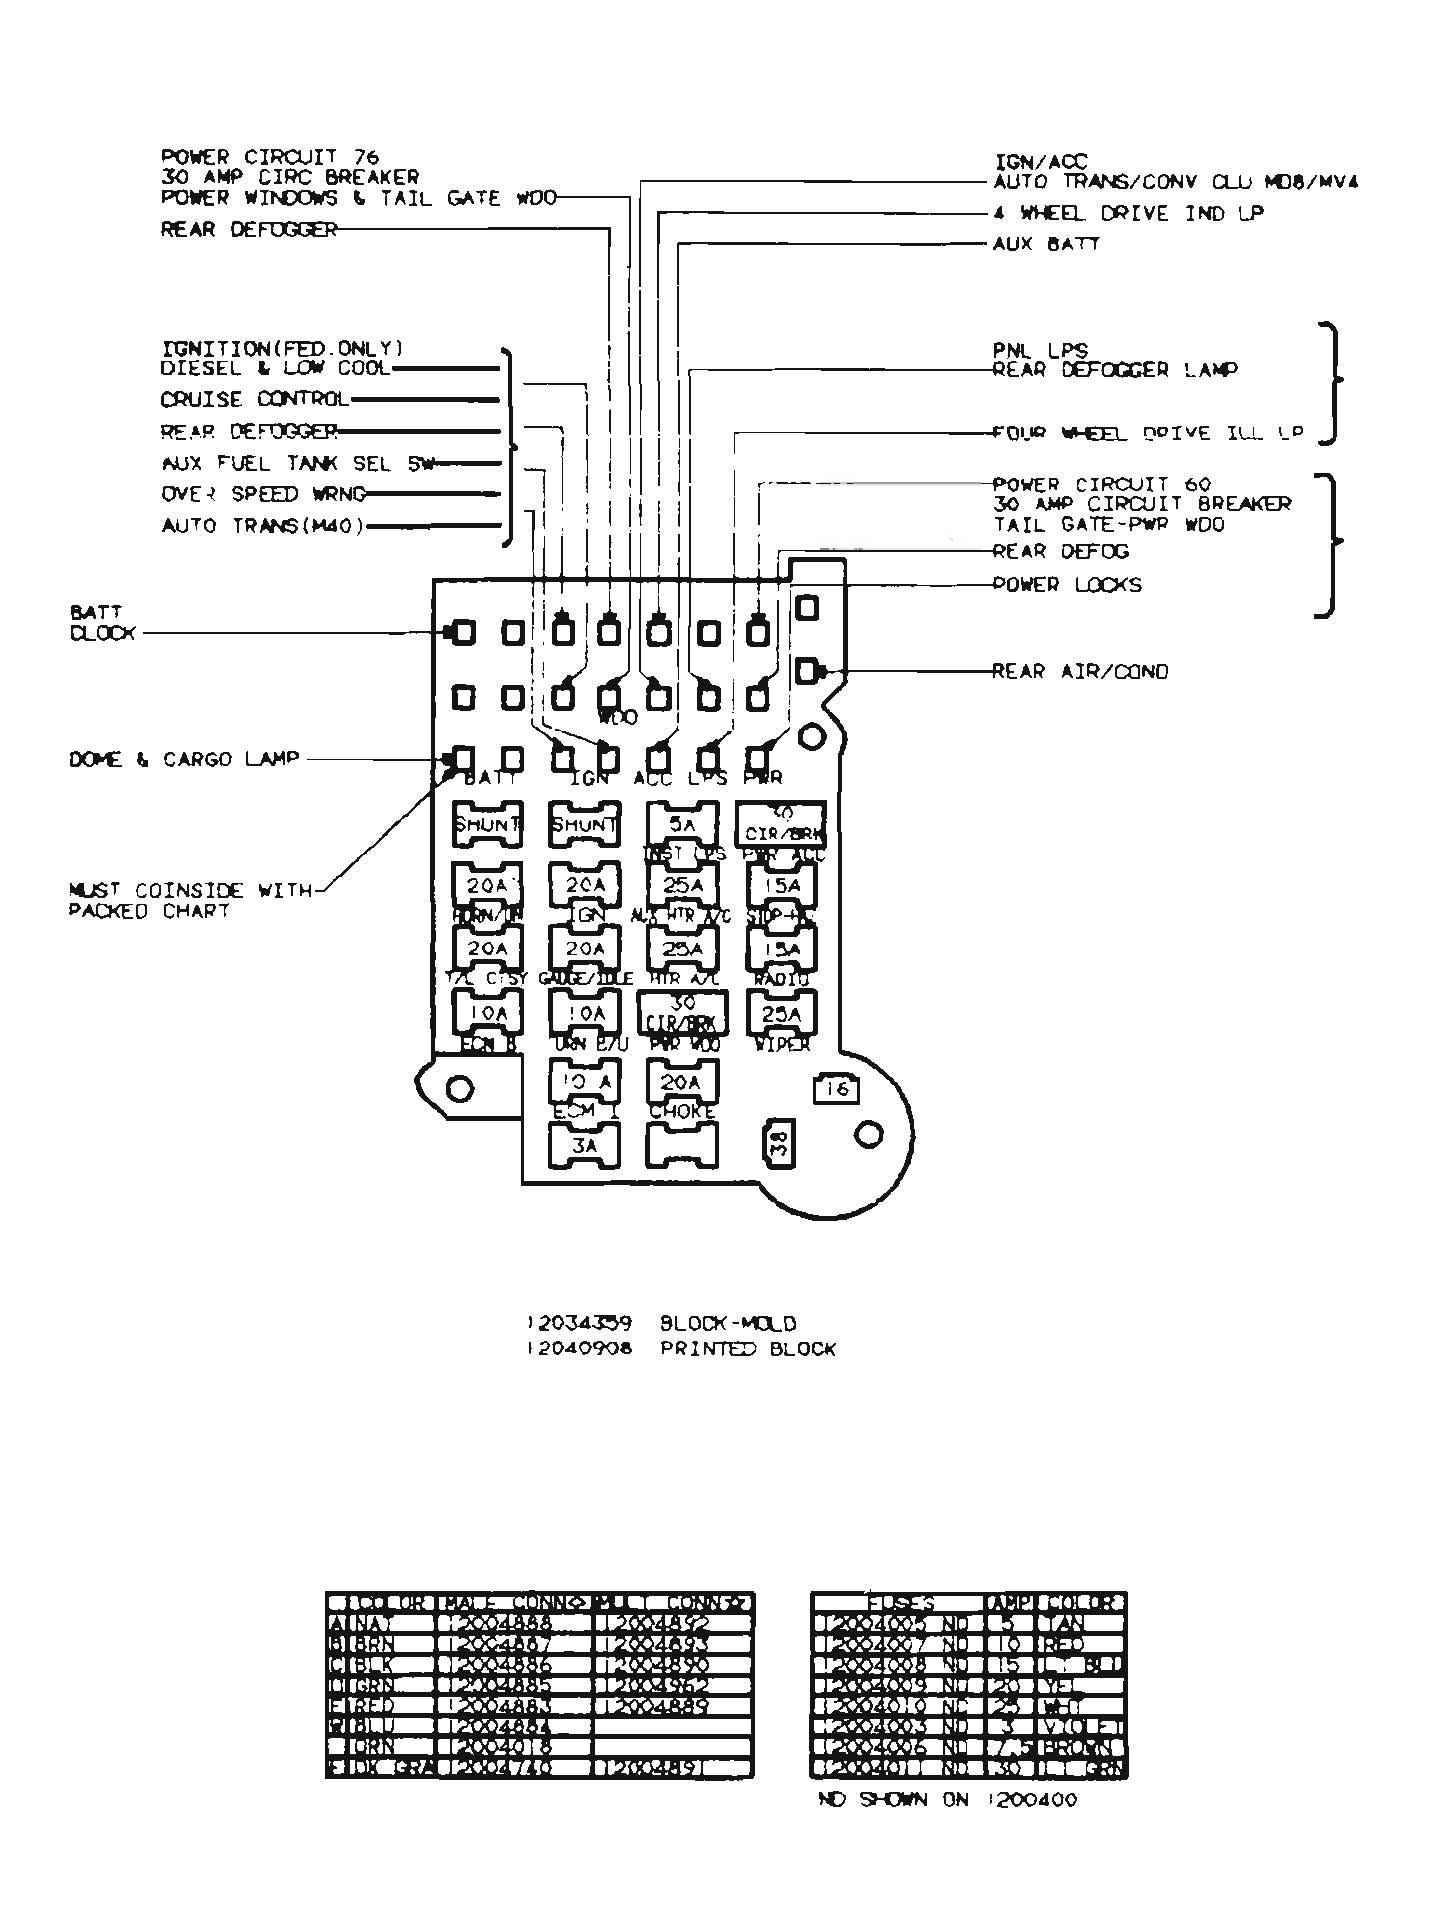 84 caprice fuse box - 1971 ford ignition wiring diagram for wiring diagram  schematics  wiring diagram schematics